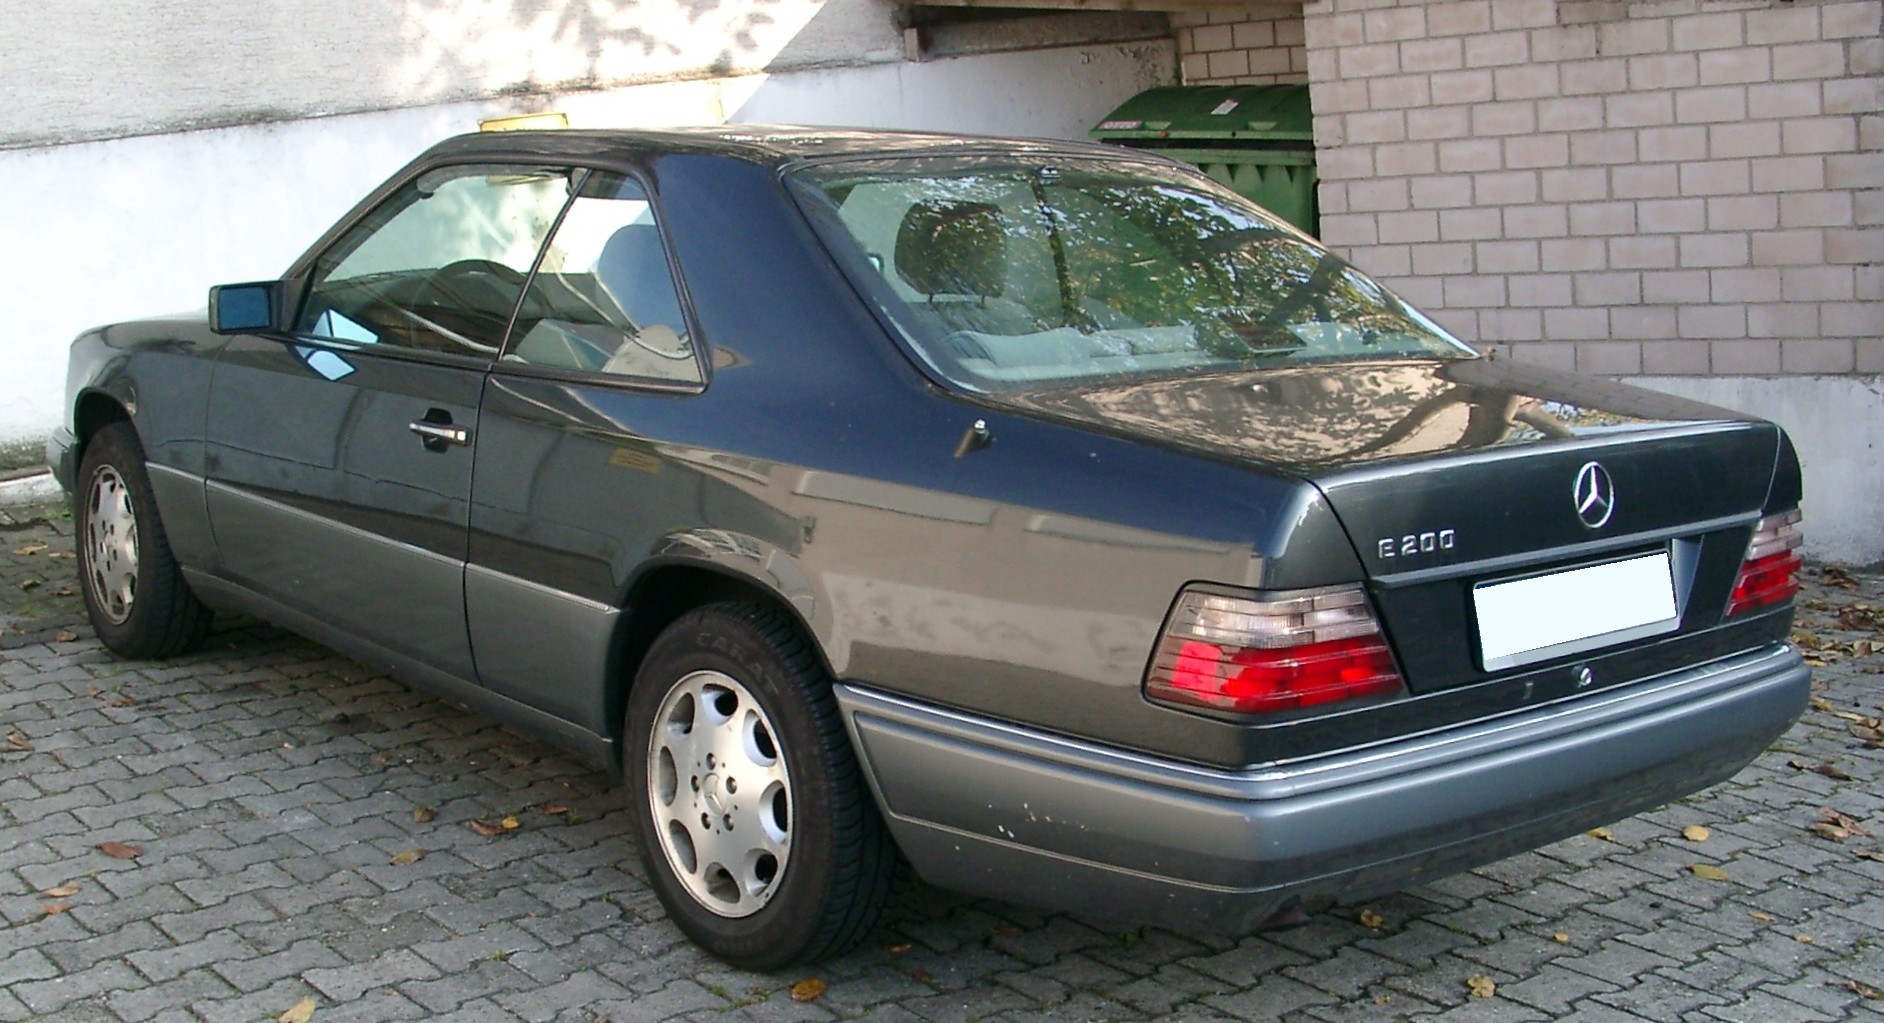 Mercedes W124 230te For Sale in addition D4ba1b3e6f2058f6 Mercedes Benz E 280 W124 1994 95 likewise Pictures additionally File Mercedes W124 Coupe rear 20071022 together with  on file mercedes benz 230 te w 124